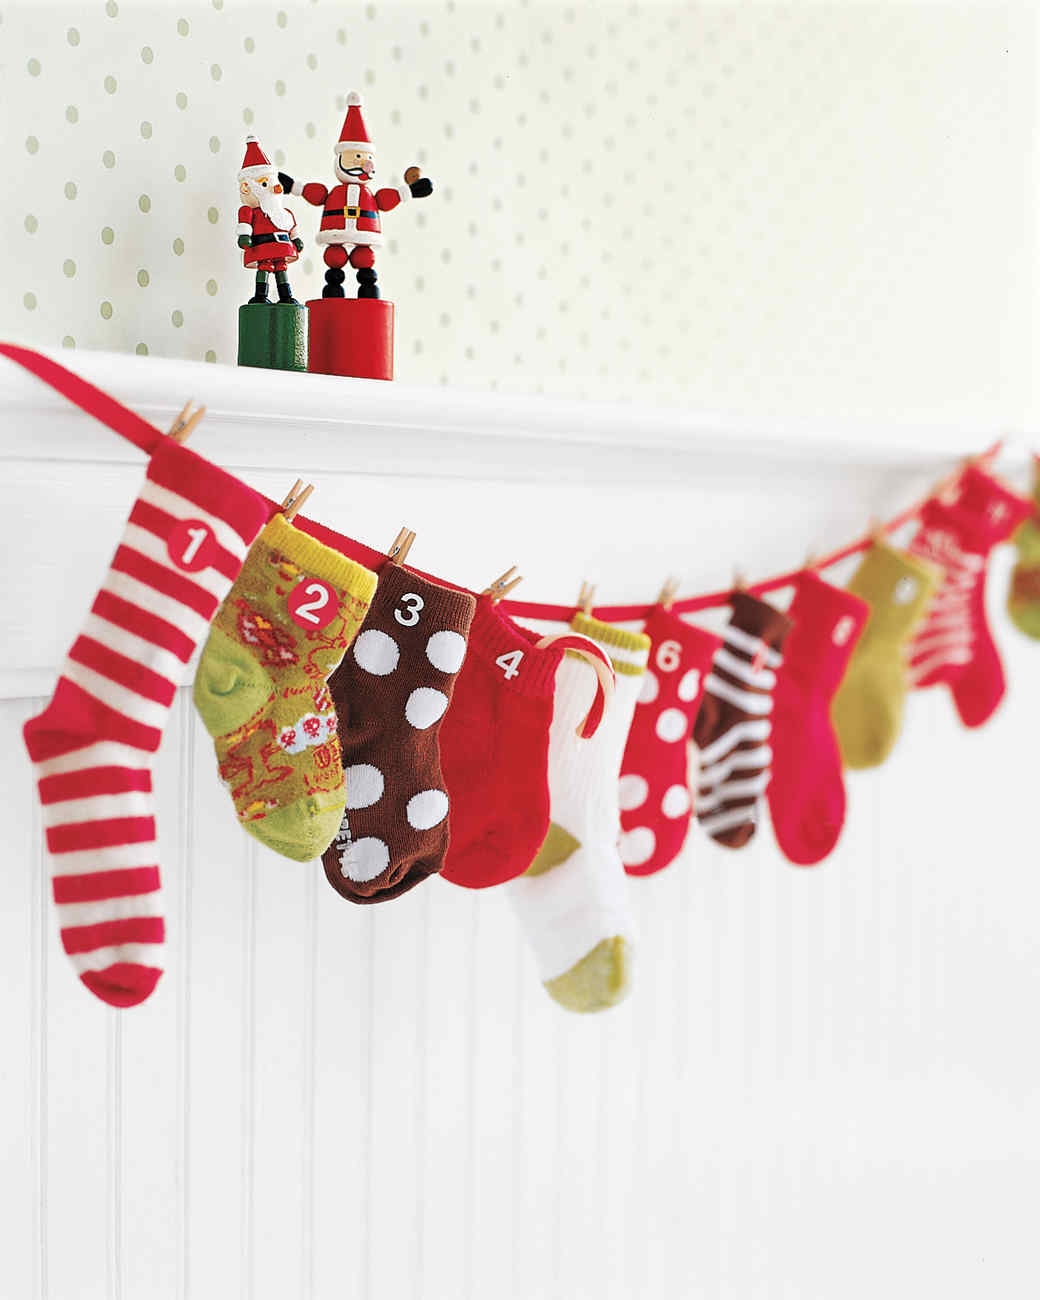 10 Martha Stewart Approved DIY Christmas Stockings| DIY Stockings, Christmas Stockings, Holiday Stockings, Martha Stewart, Martha Stewart Stockings, Martha Stewart Christmas Decor, Holiday Home Decor, Popular Pin #Holiday #ChristmasDecor #DIYHoliday